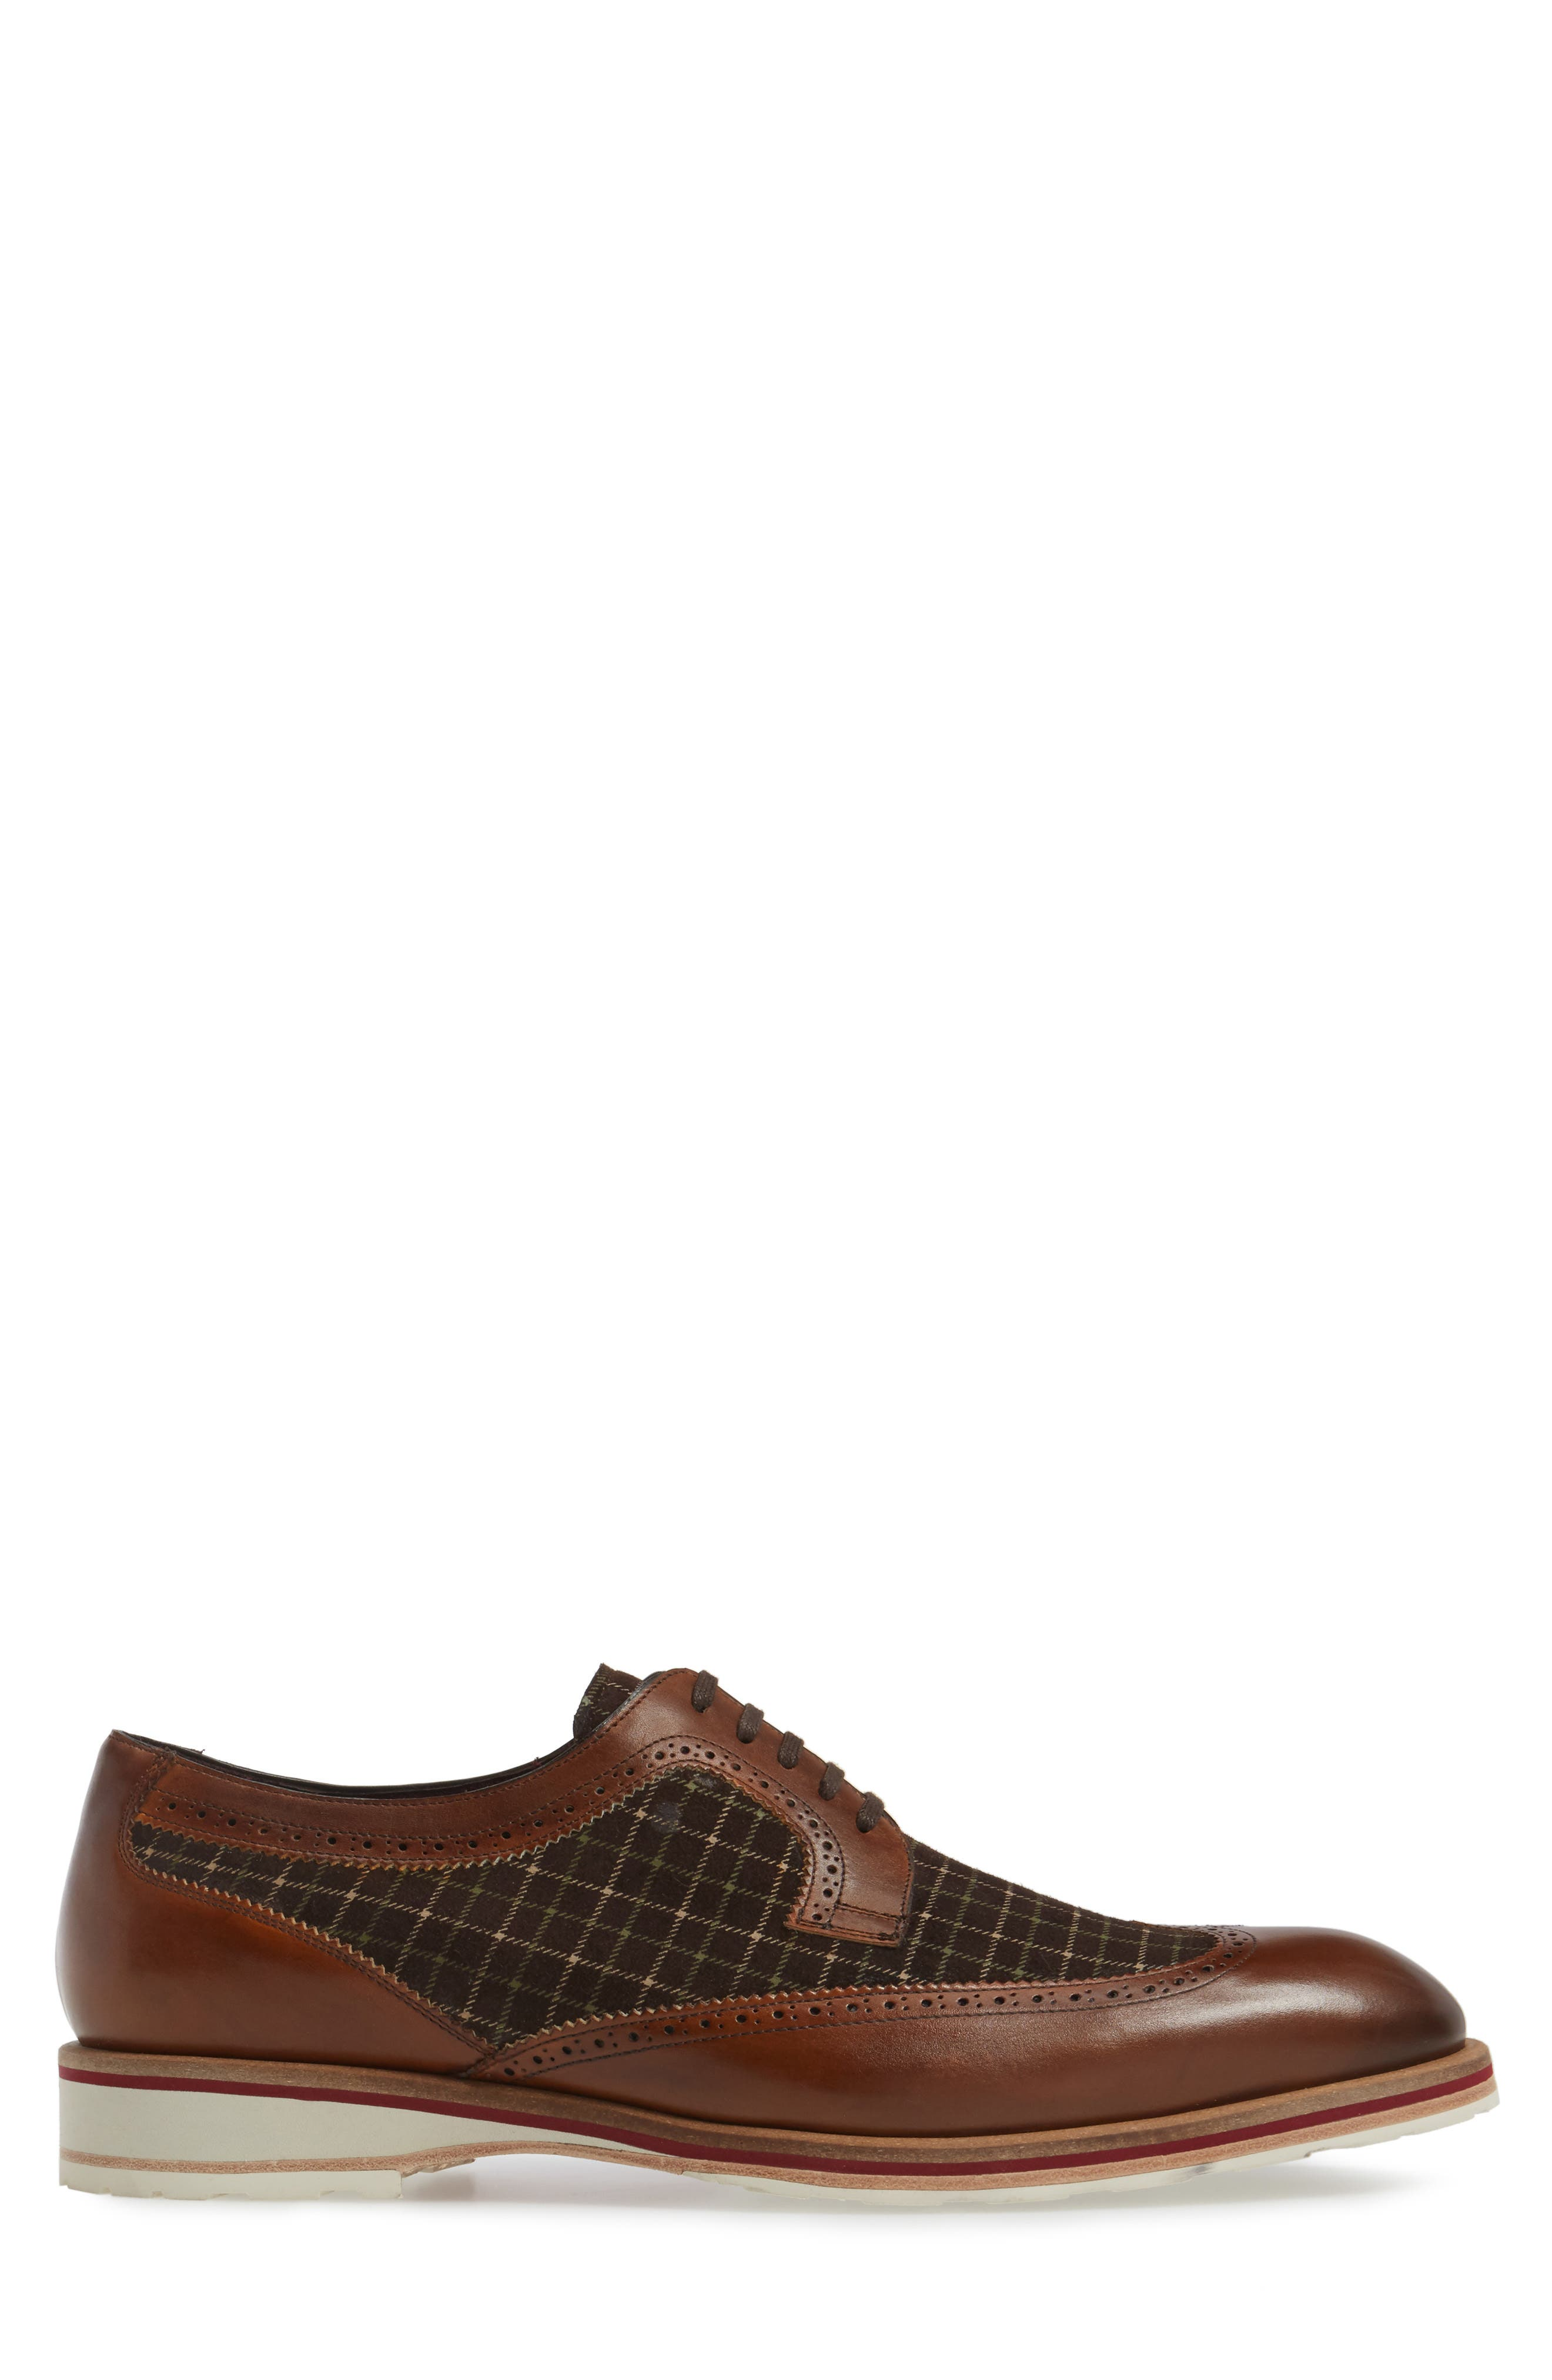 Paulov Tattersall Wingtip,                             Alternate thumbnail 3, color,                             Cognac/ Brown Leather